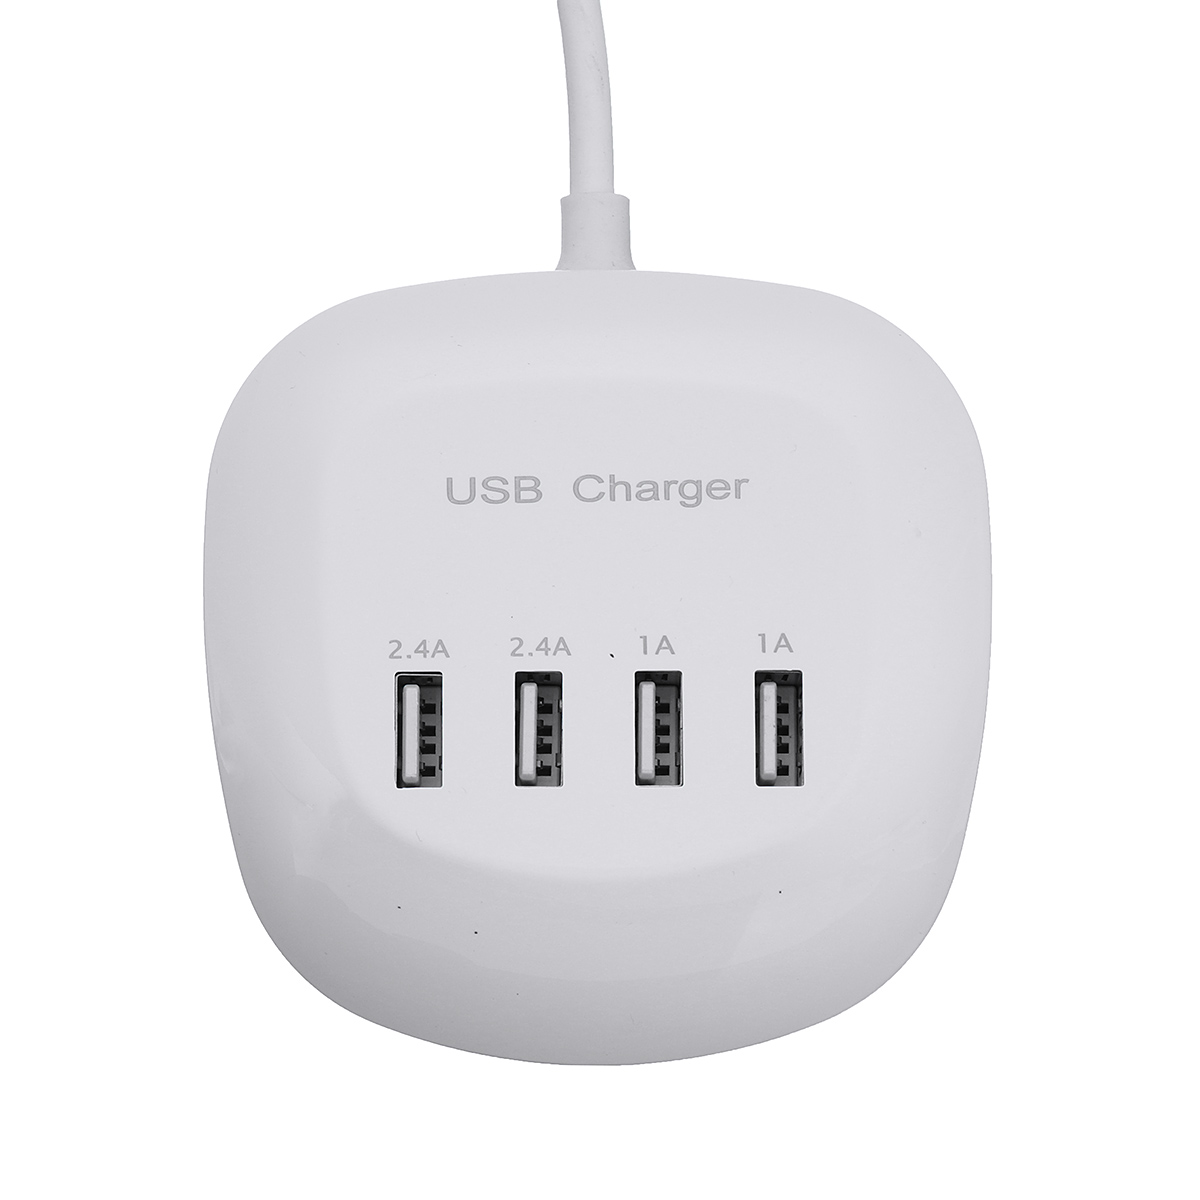 4 Port USB Charger 1A/2.4A Fast Charger Station Home Travel Wall Socket US/EU Plug